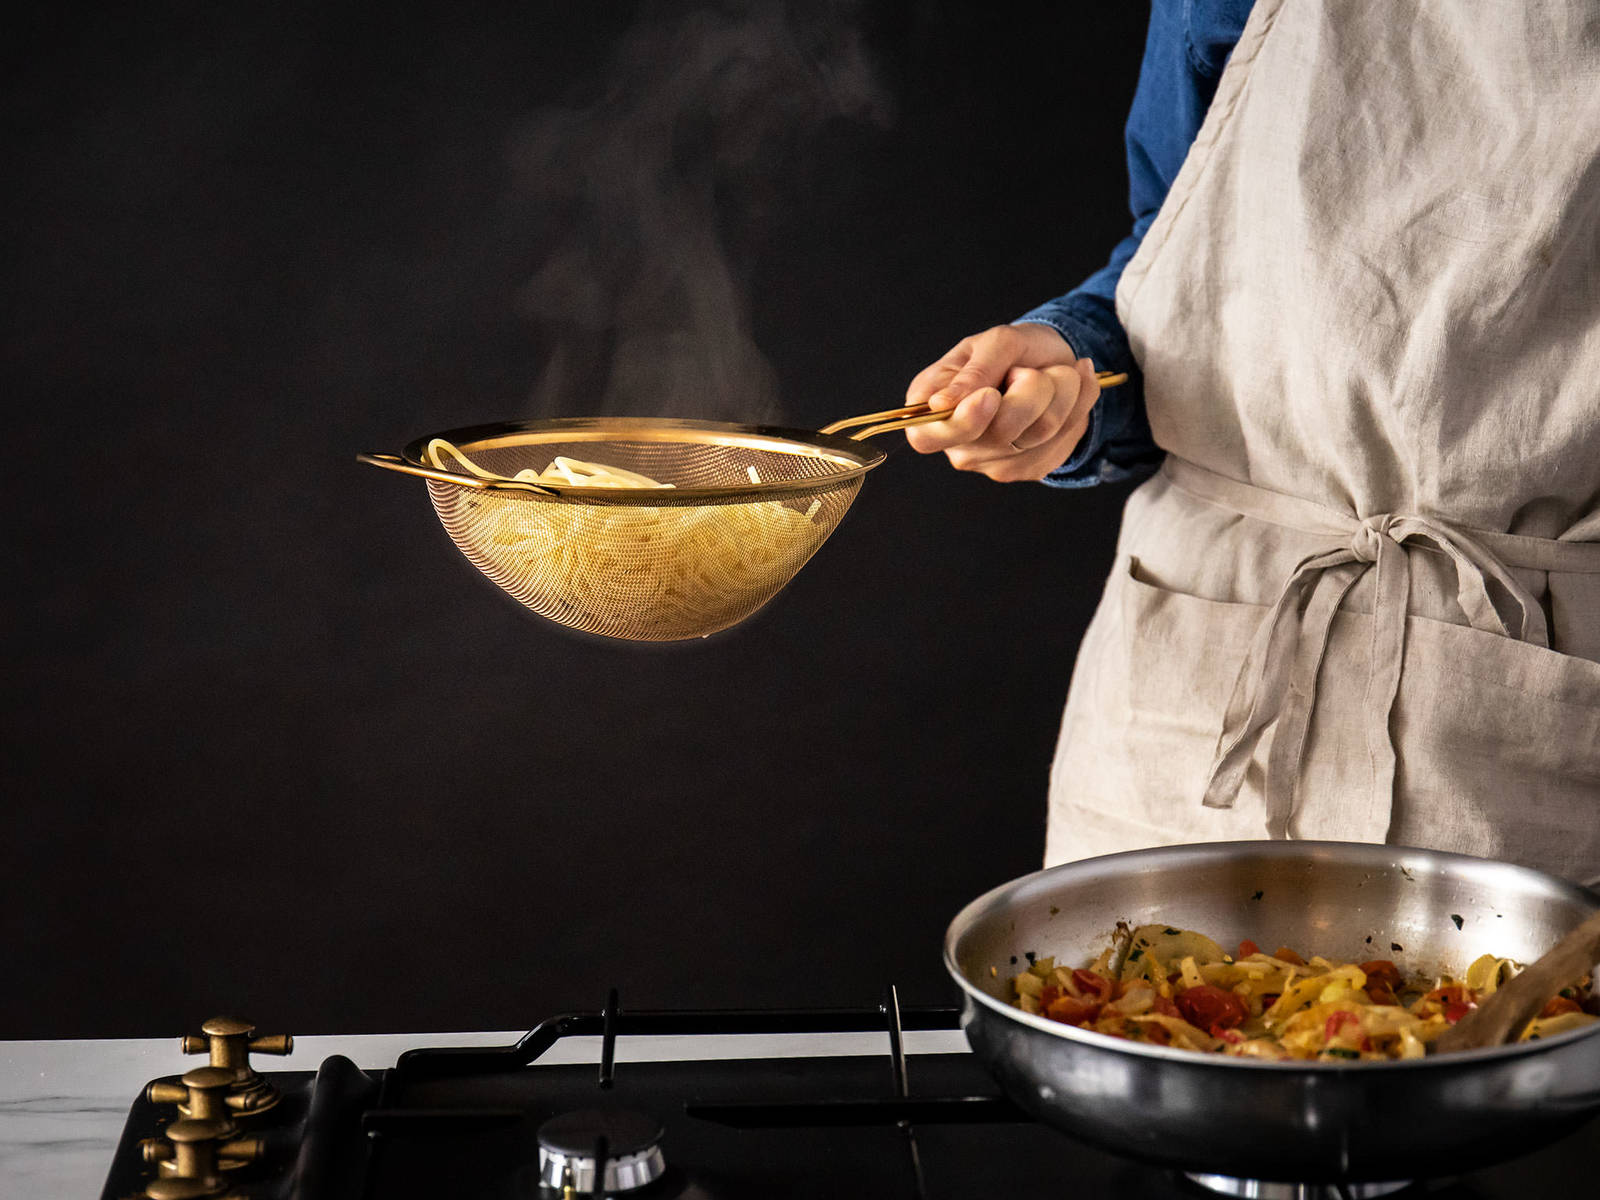 Bring water to a boil in a pot. Salt generously and cook the spaghetti until al dente. Reserve some pasta water, draining the rest, and add the cooked pasta to the pan with the fennel. Mix well, adding the reserved pasta water to the pan to make a light sauce. Garnish with the remaining mint. Enjoy!